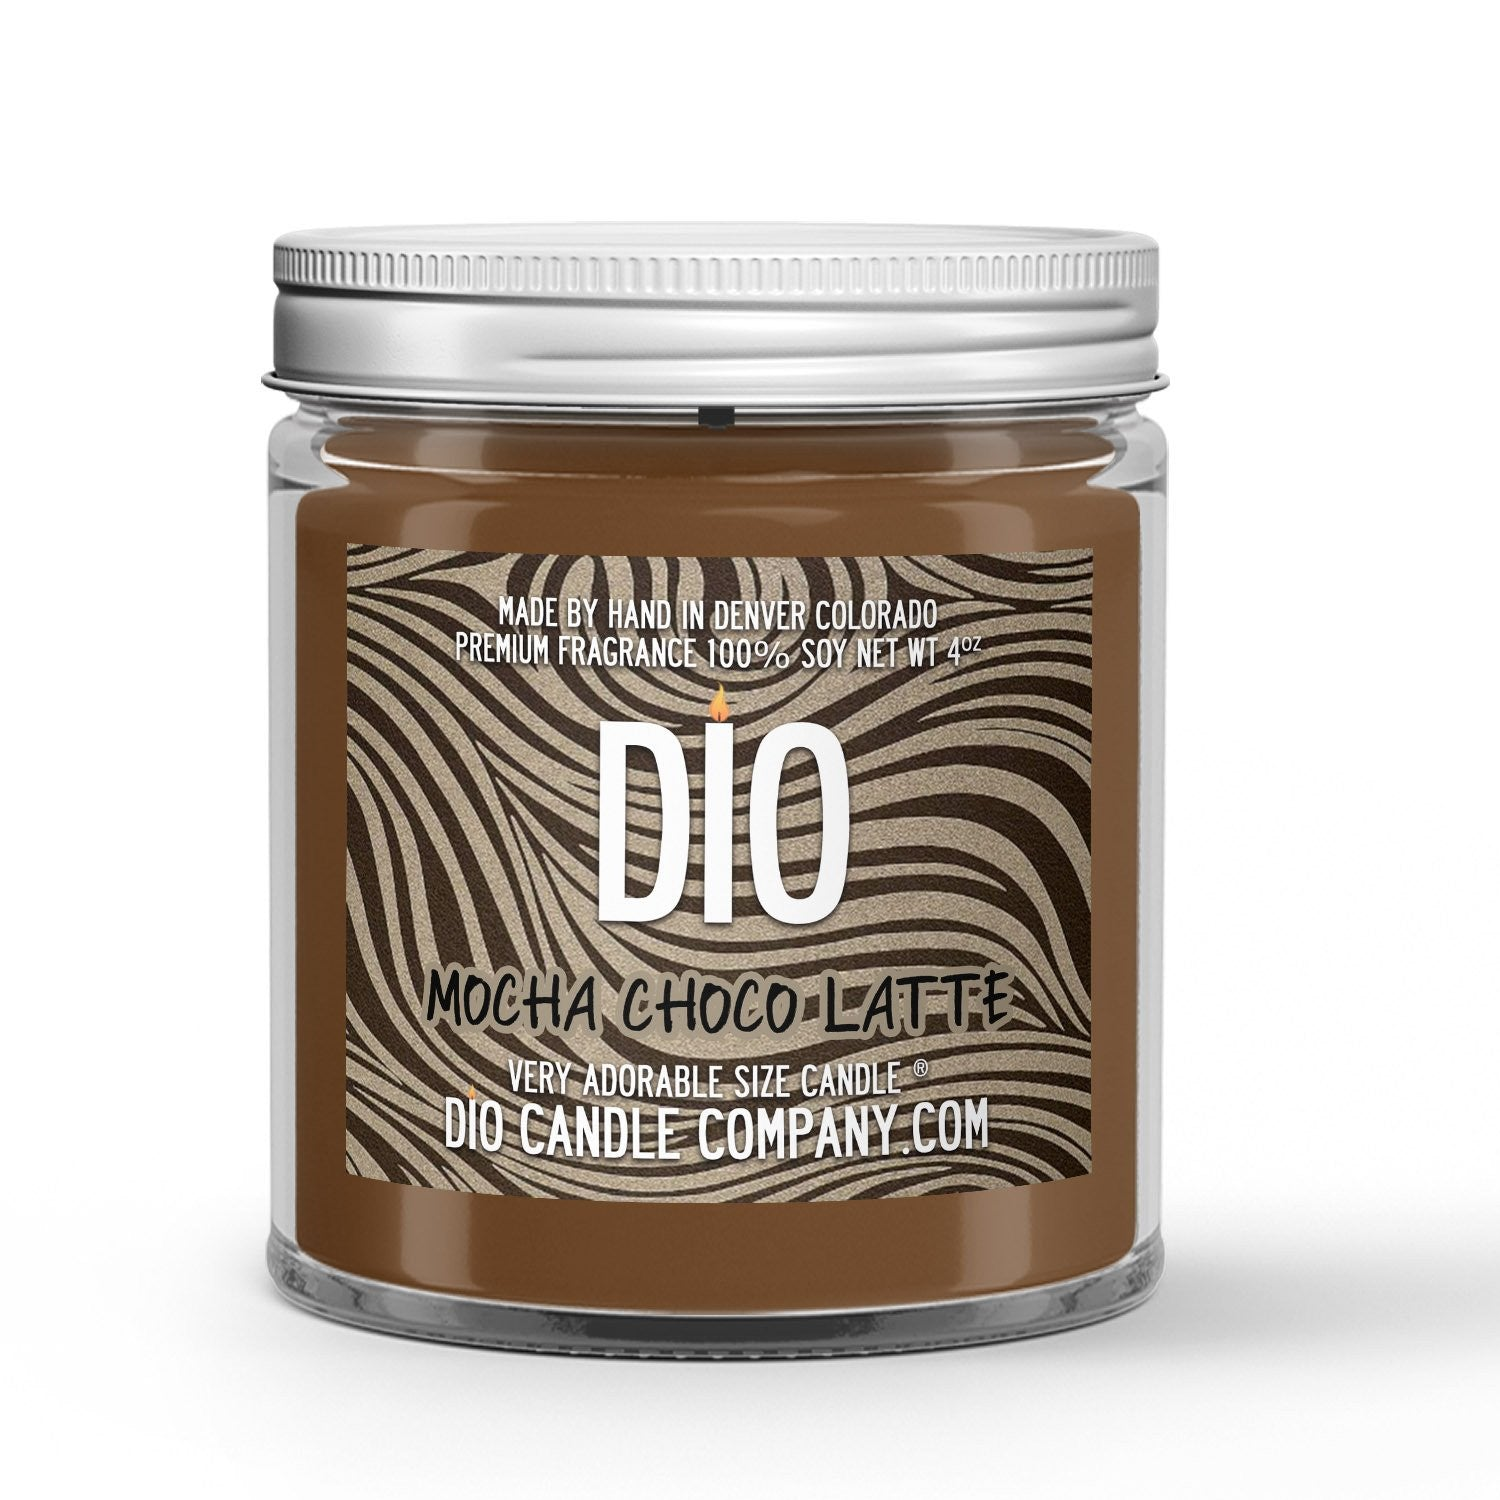 Mocha Choco Latte Mother's Day Candle - Chocolate - Coffee - 4oz Very Adorable Size Candle® - Dio Candle Company